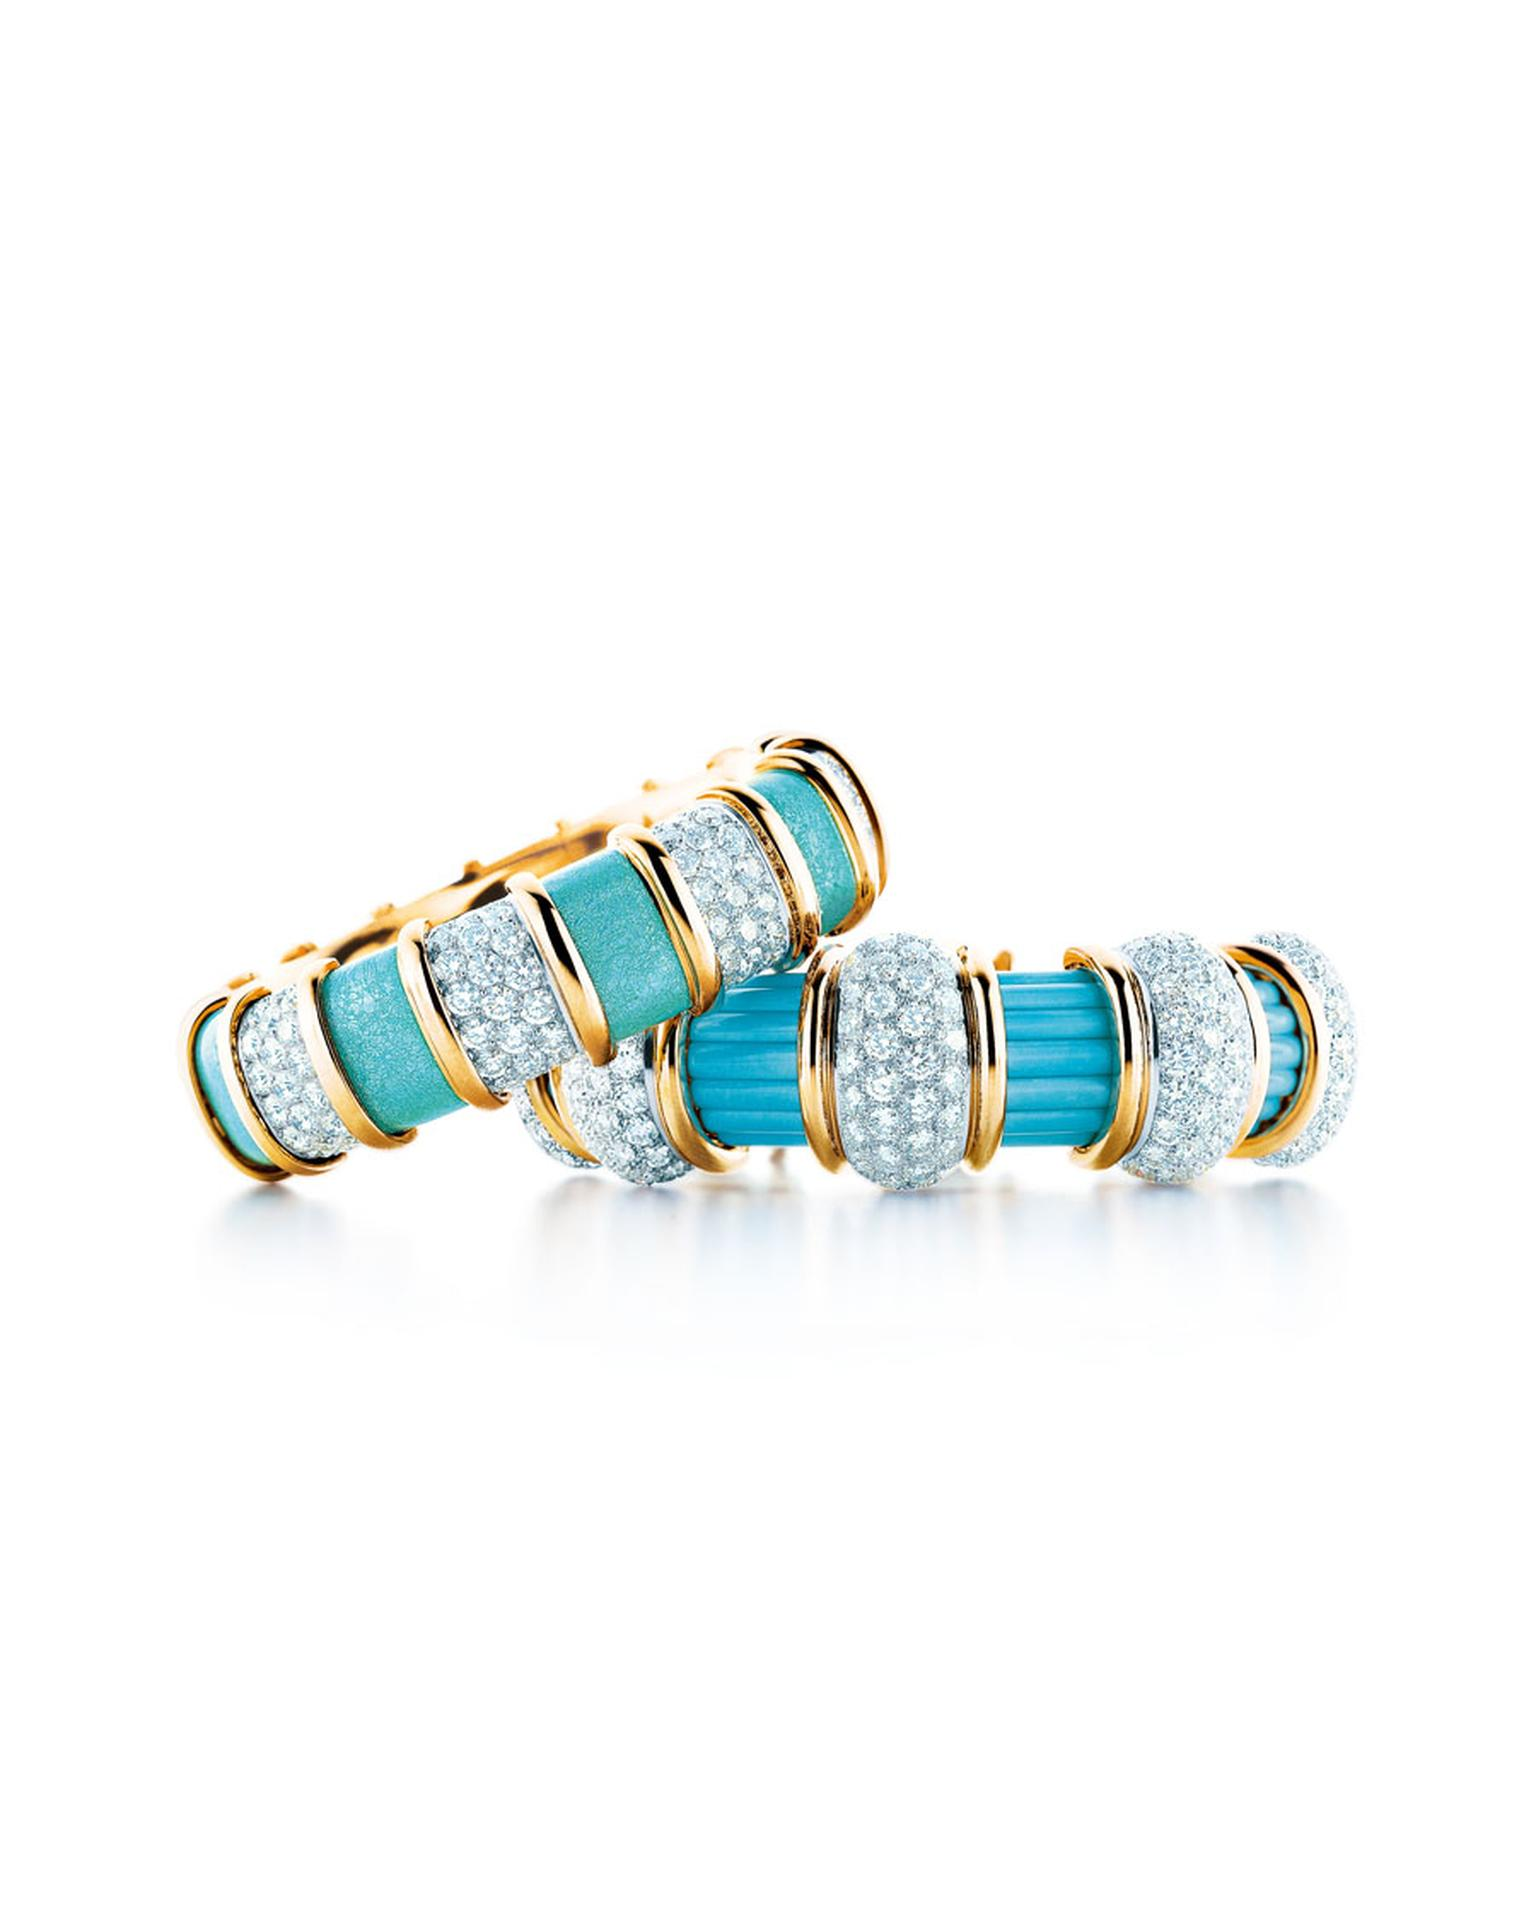 Tiffany & Co. turquoise, diamond and gold bangles, inspired by original designs by Jean Schlumberger